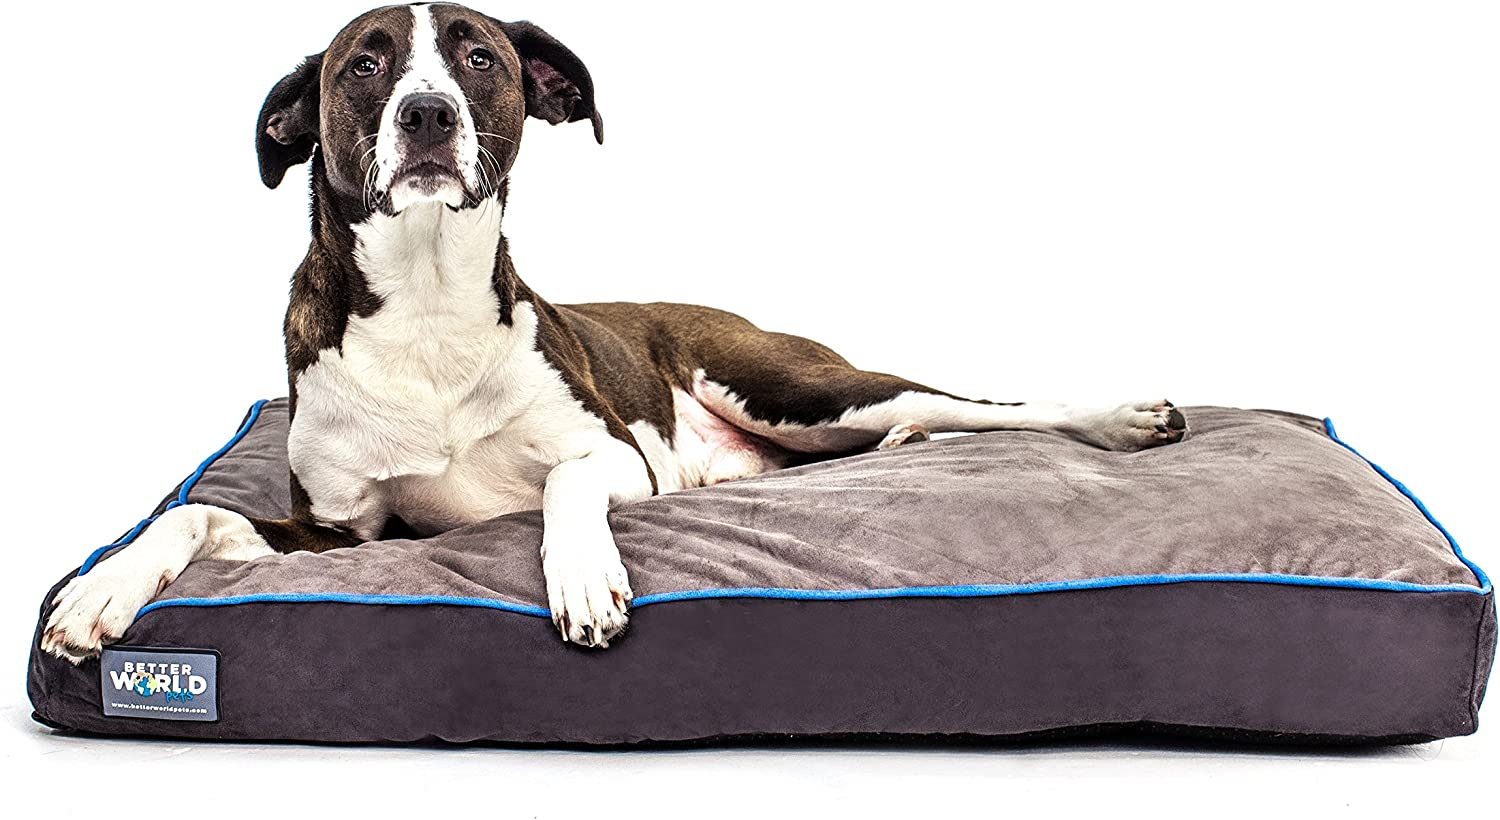 FirstQuality Orthopedic Dog Bed  Pure Premium Shredded Memory Foam Ideal for Aging Dogs   Eases Pain of Arthritis & Hip Dysplasia   Waterproof 180 GSM Removable Washable Cover